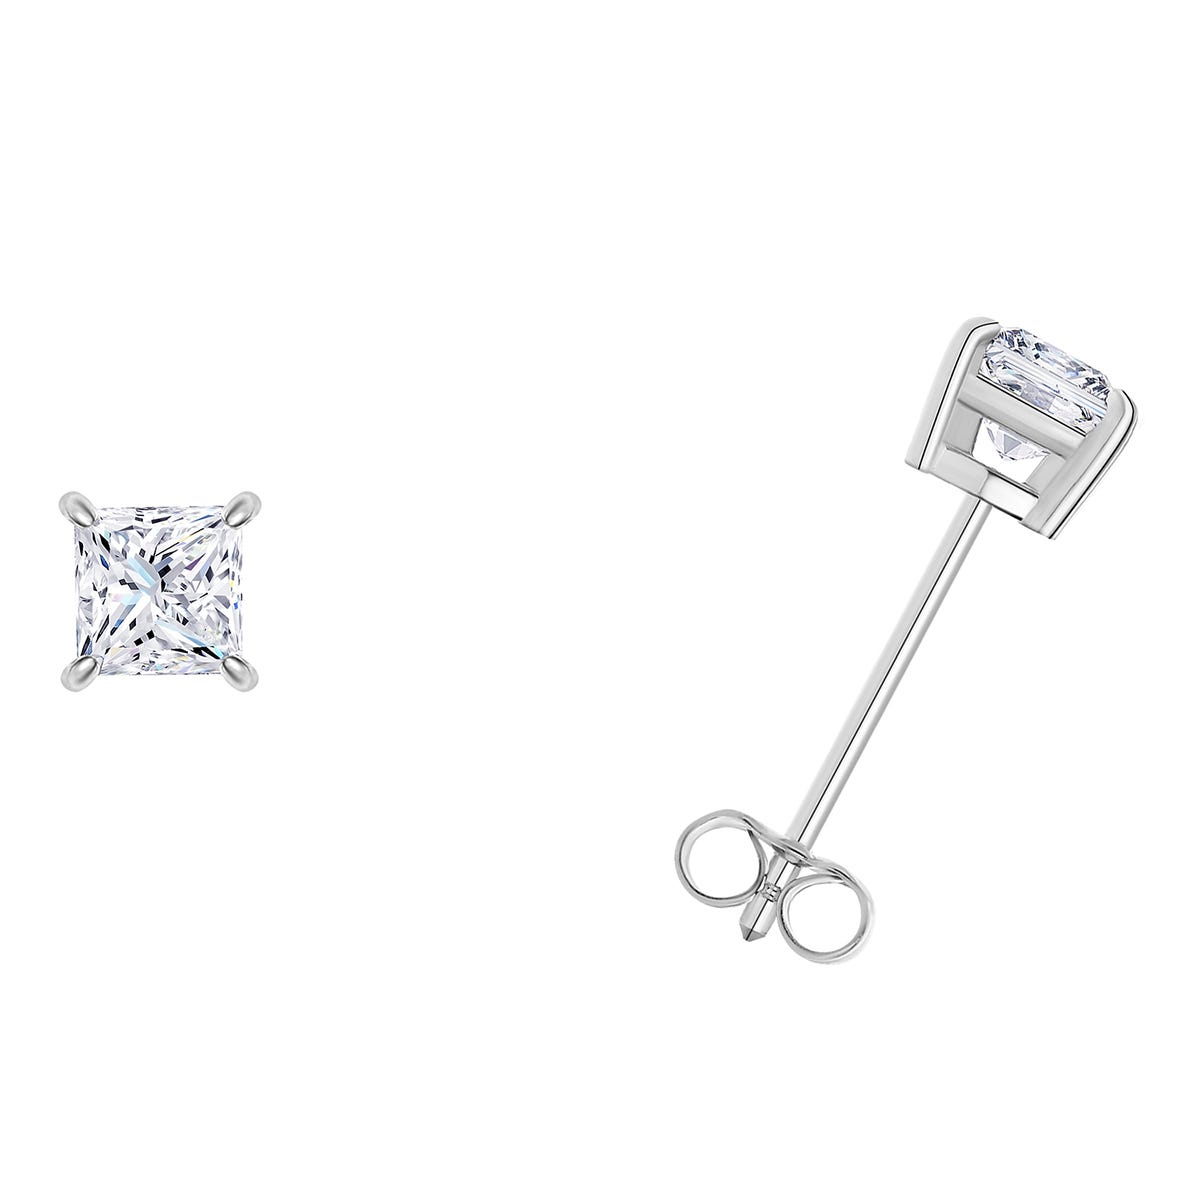 1/4 CTTW Princess Cut Diamond Solitaire Stud Earrings in 10K White Gold IGI Certified